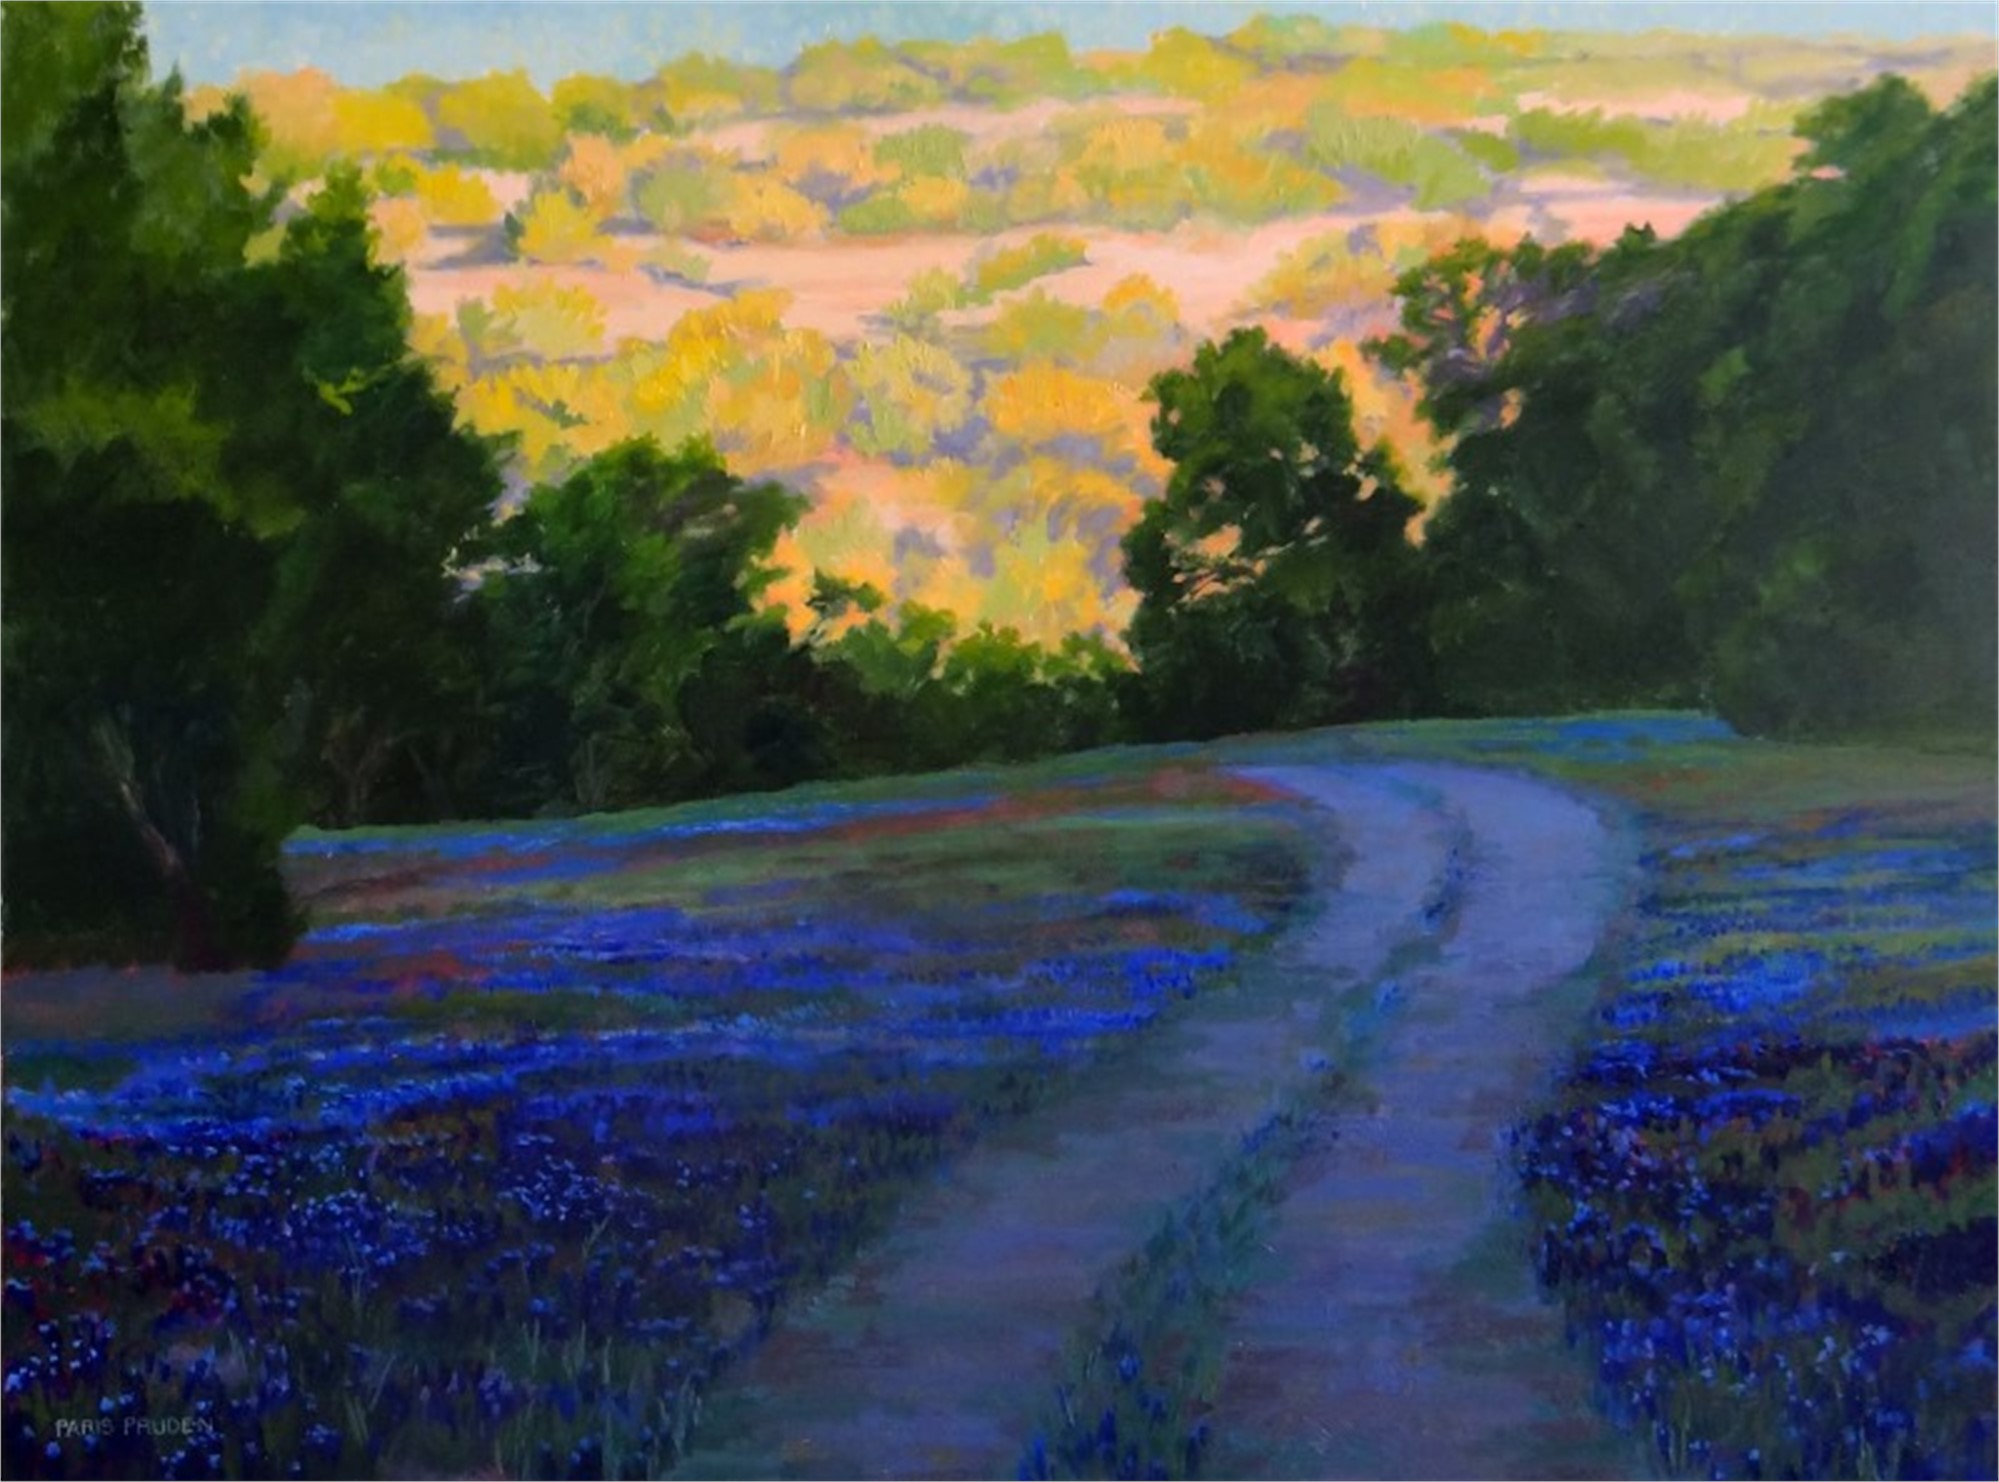 Sunrise Bluebonnets, 2015 by Nancy Paris Pruden